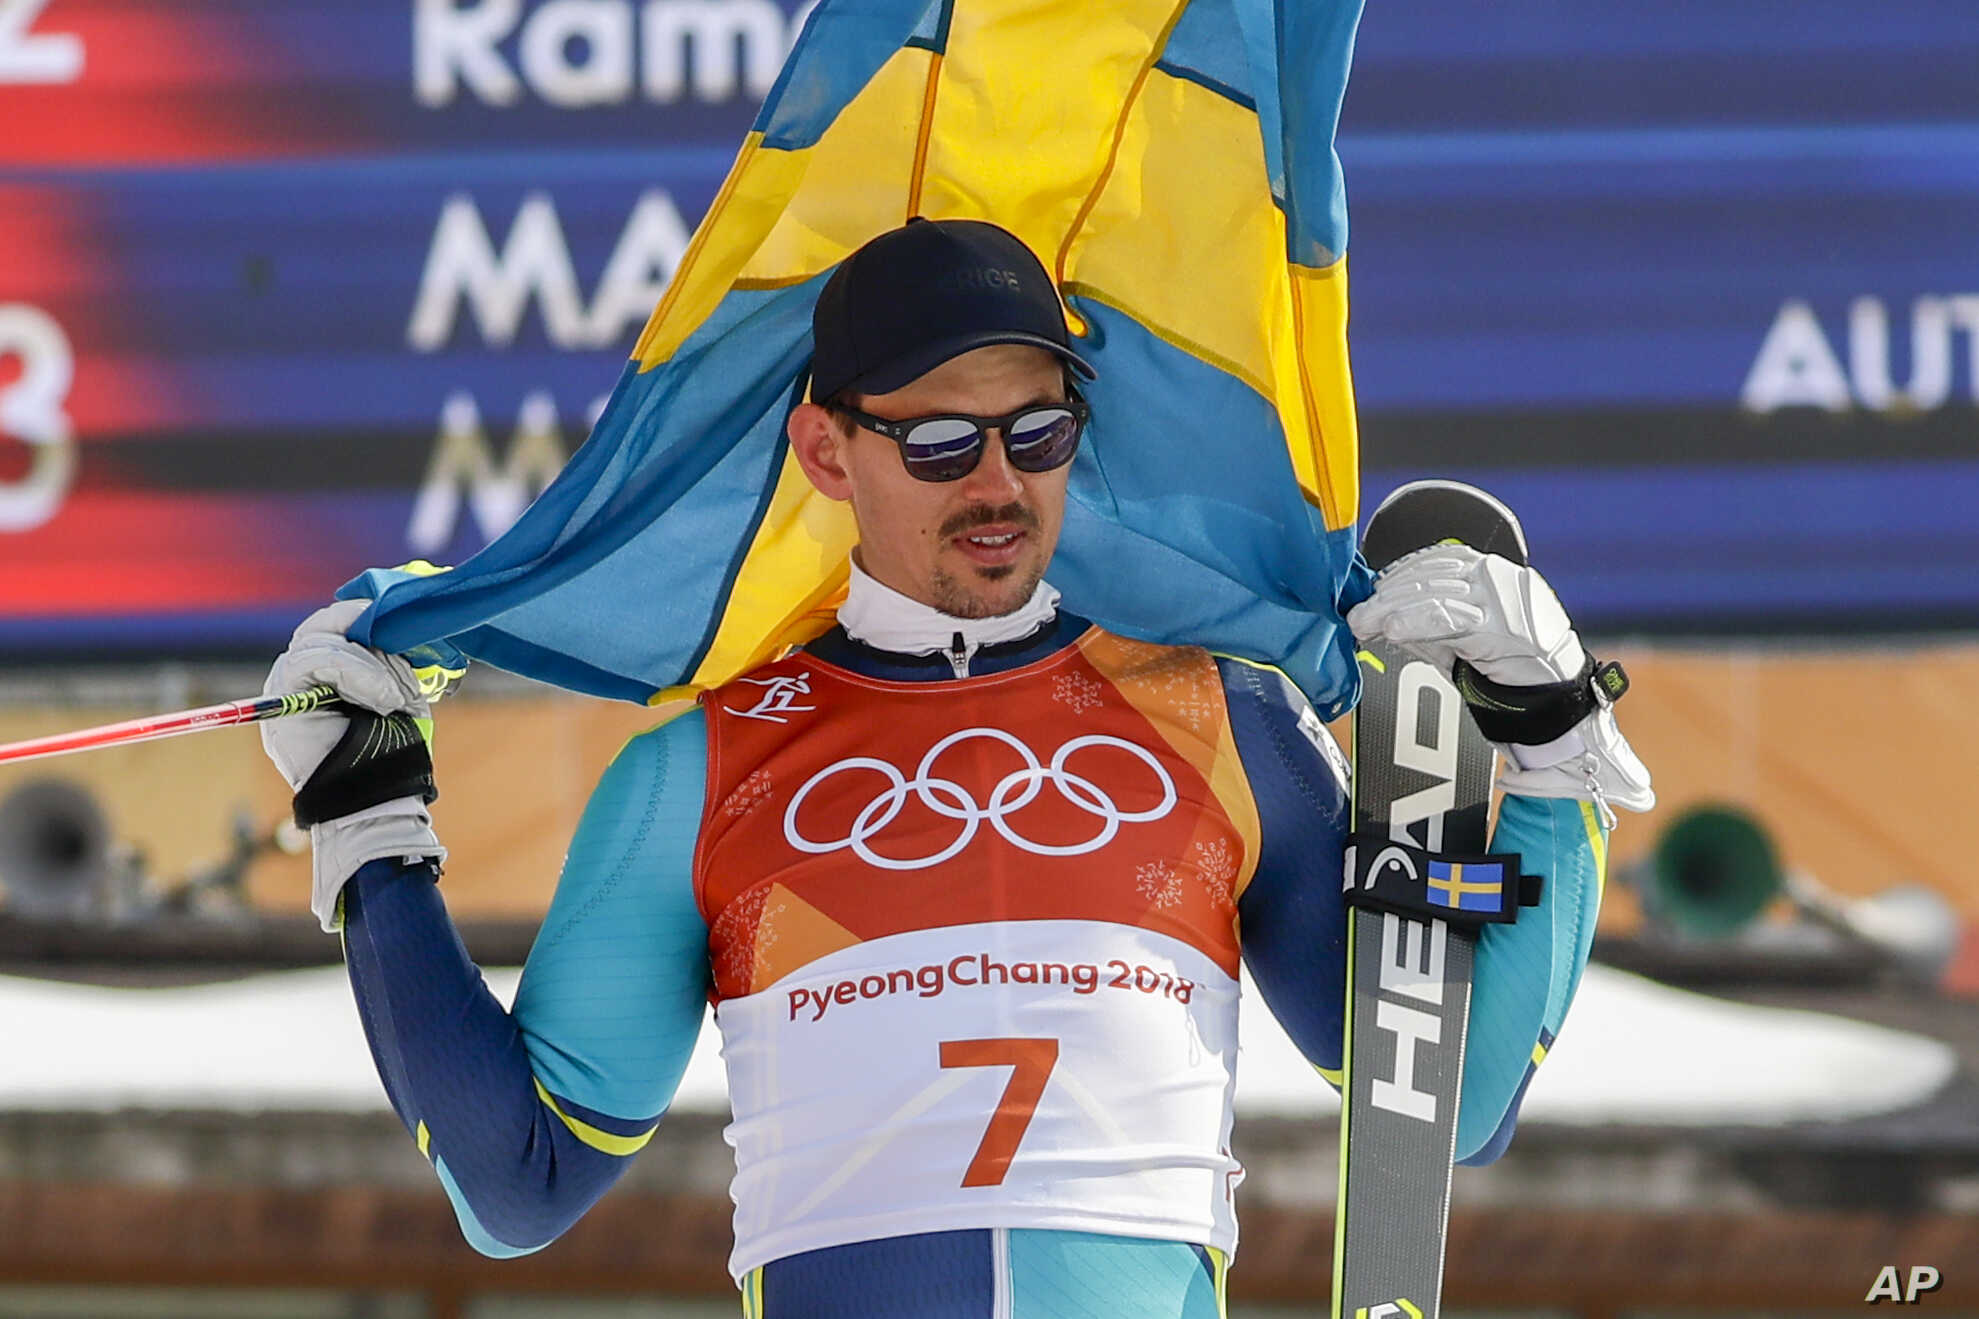 Andre Myhrer, of Sweden, celebrates his gold medal during the venue ceremony after the men's slalom at the 2018 Winter Olympics in Pyeongchang, South Korea, Feb. 22, 2018.